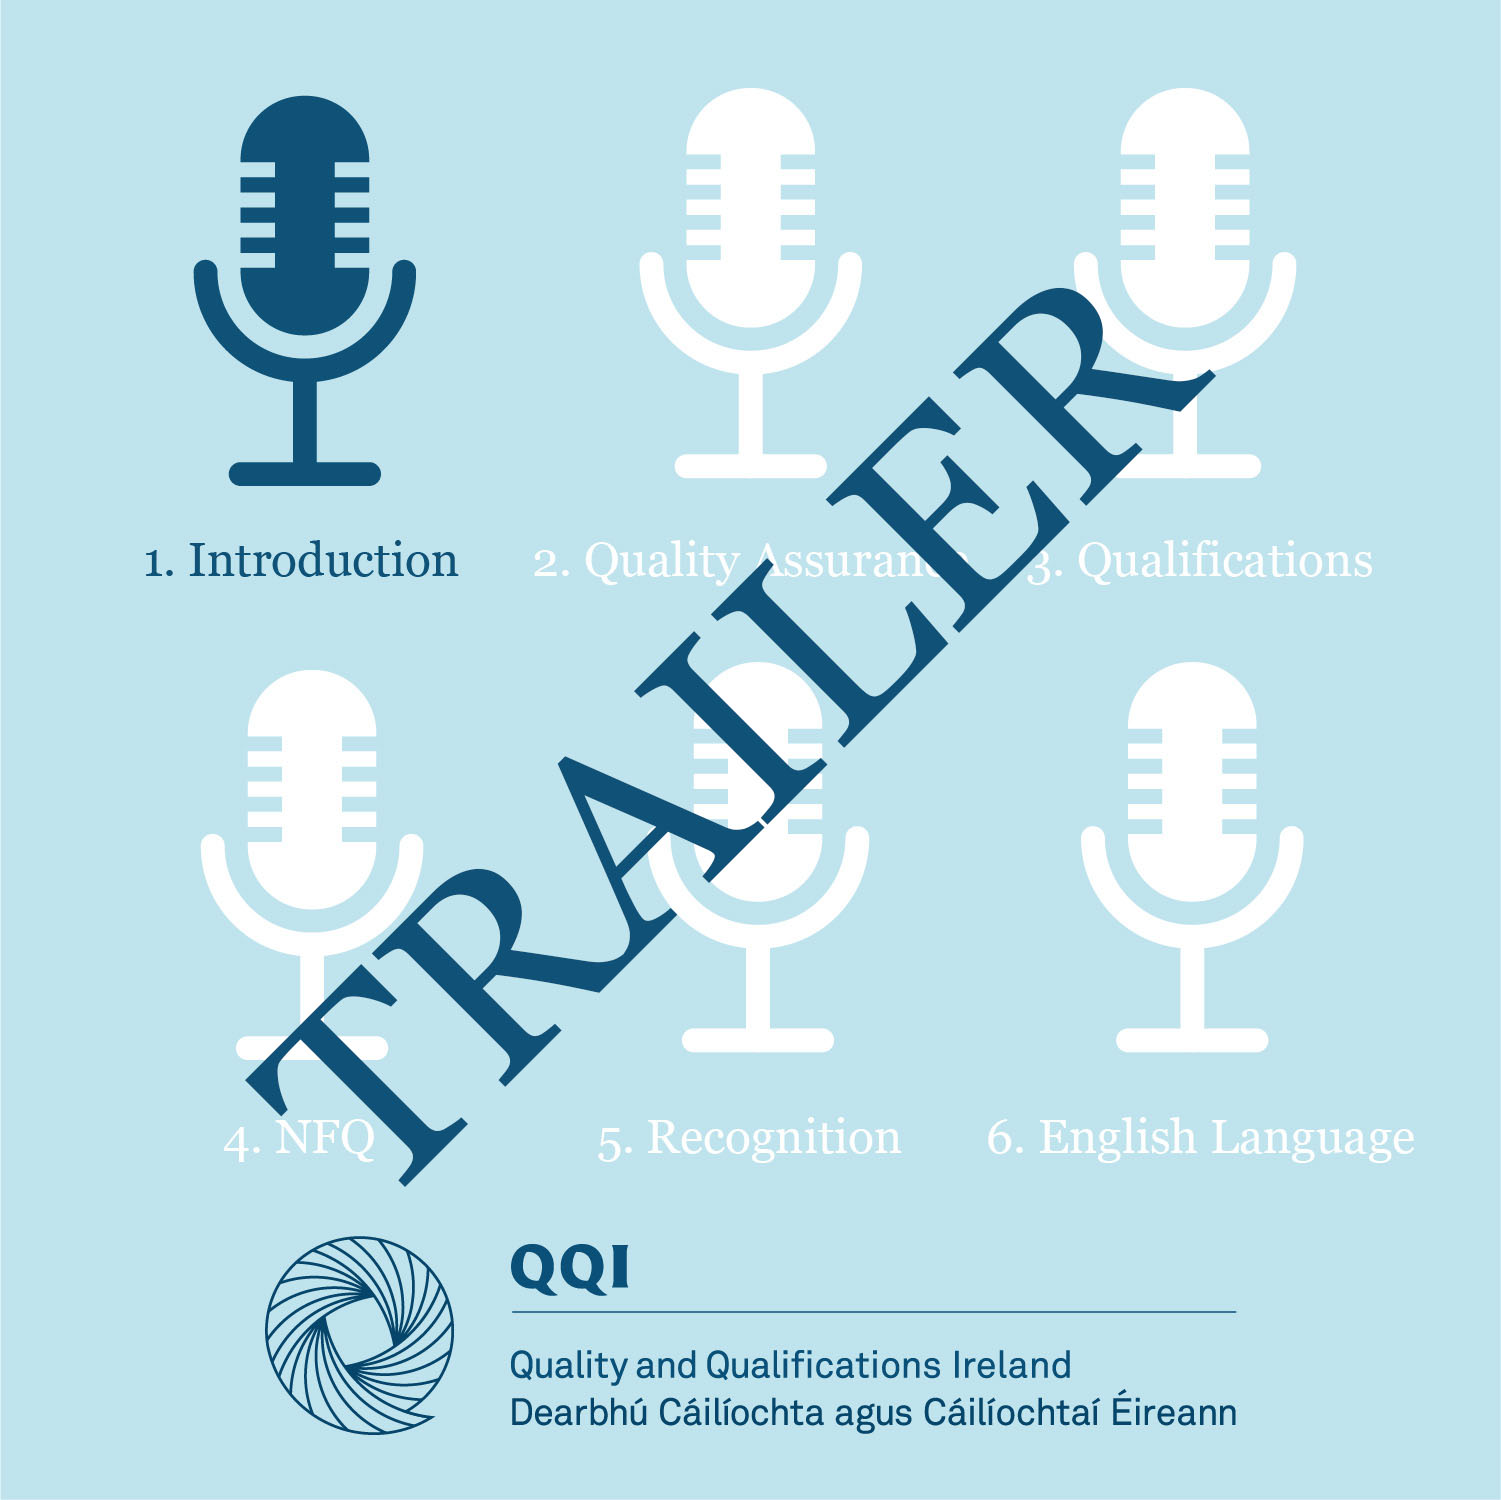 1. Introduction to QQI—Trailer 1